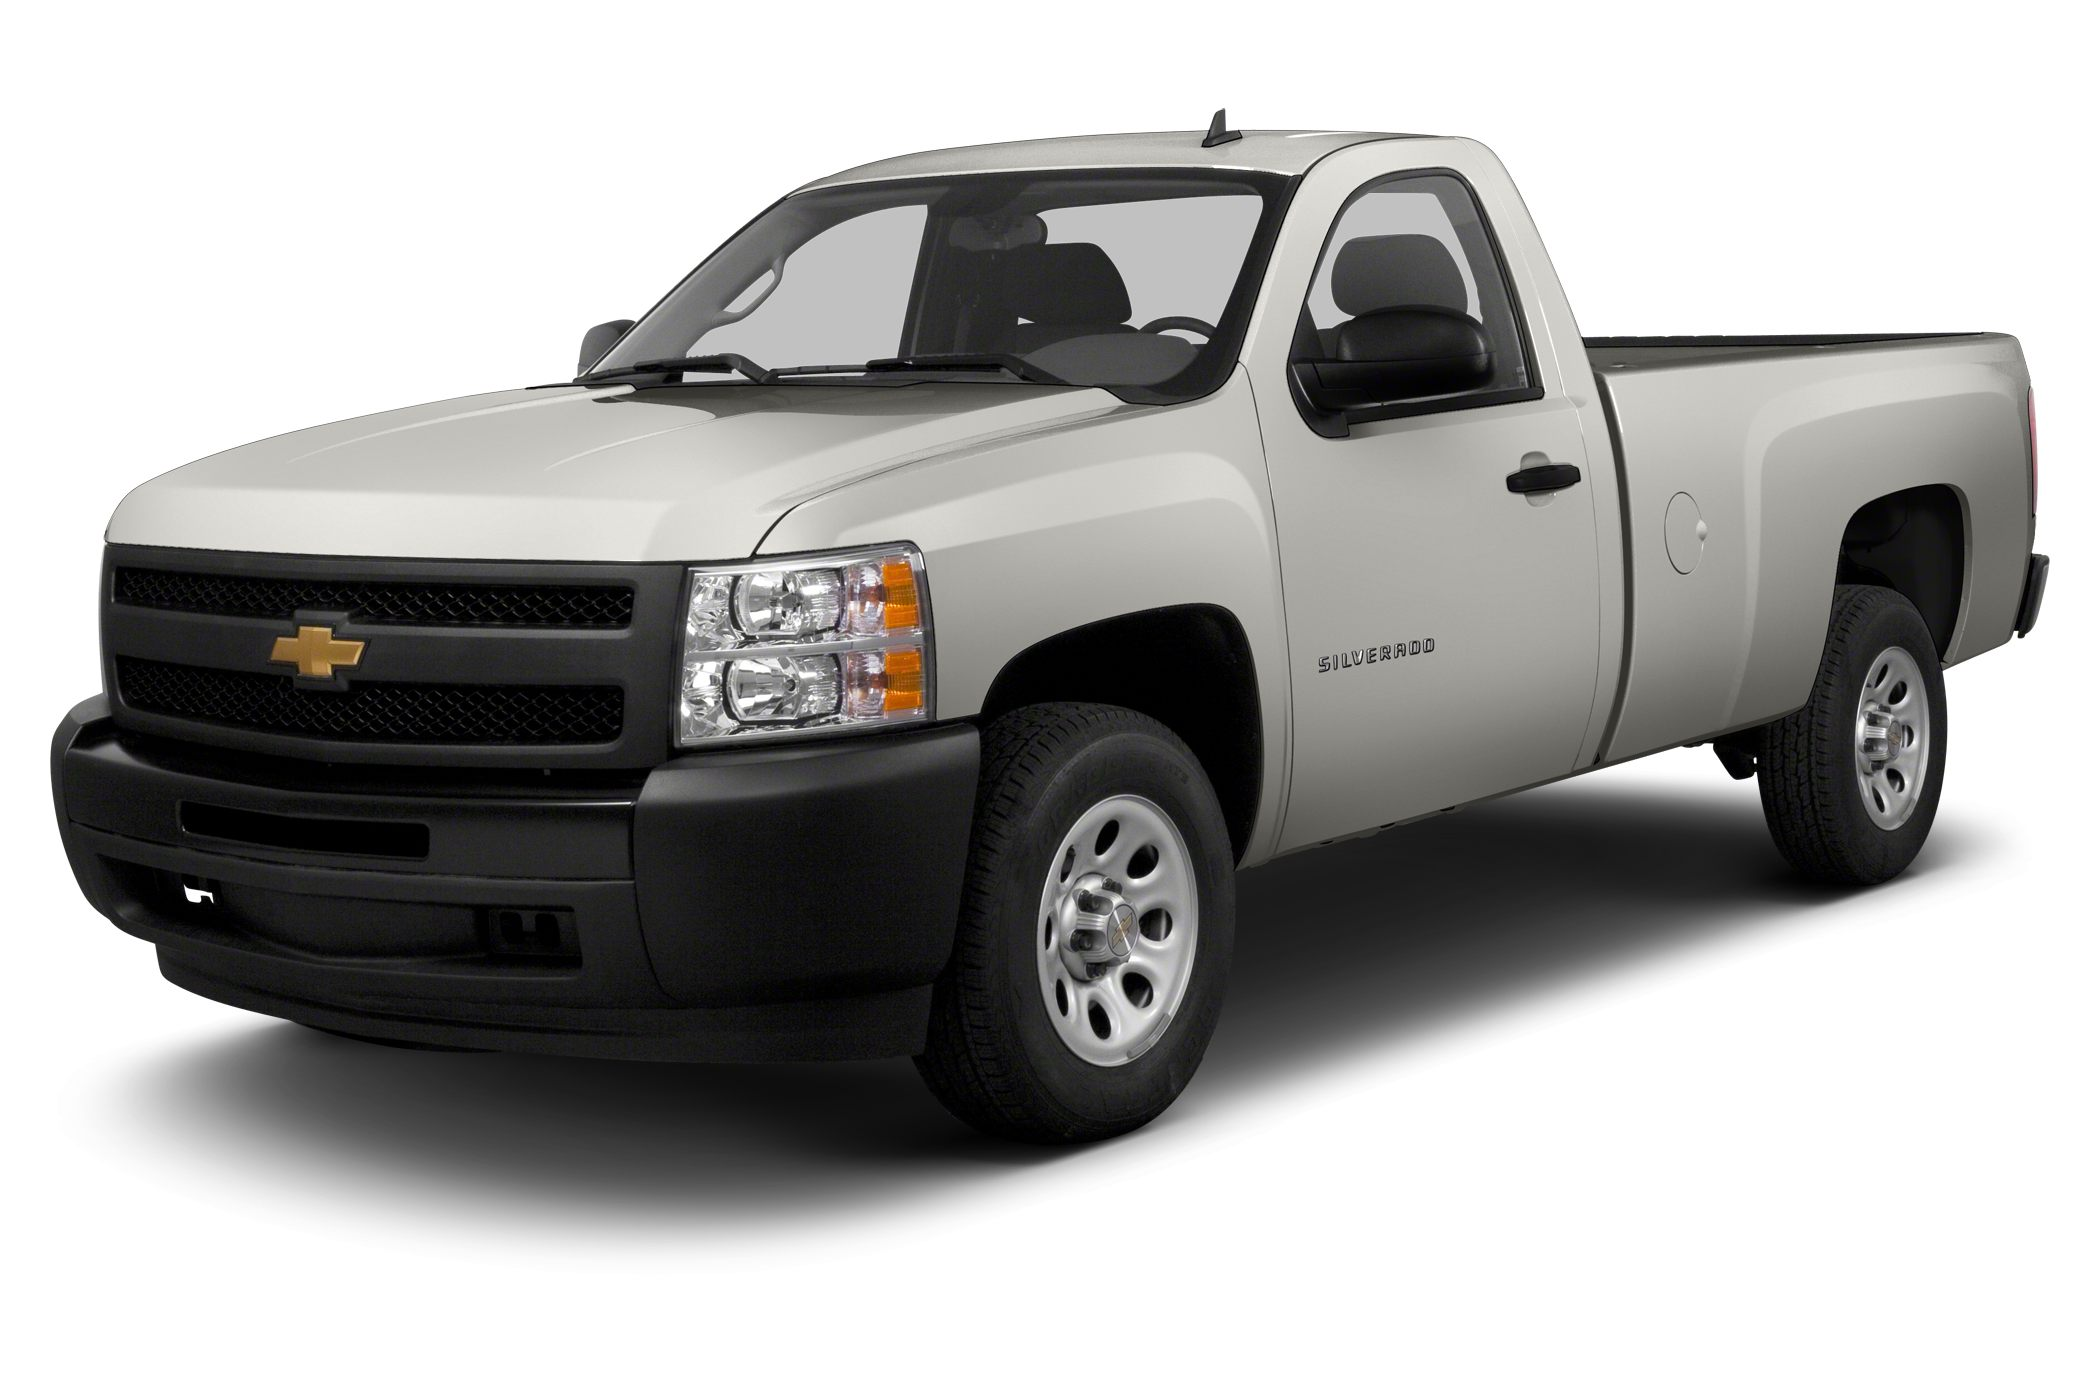 2013 Chevrolet Silverado 1500 LT Crew Cab Pickup for sale in Decatur for $29,990 with 32,241 miles